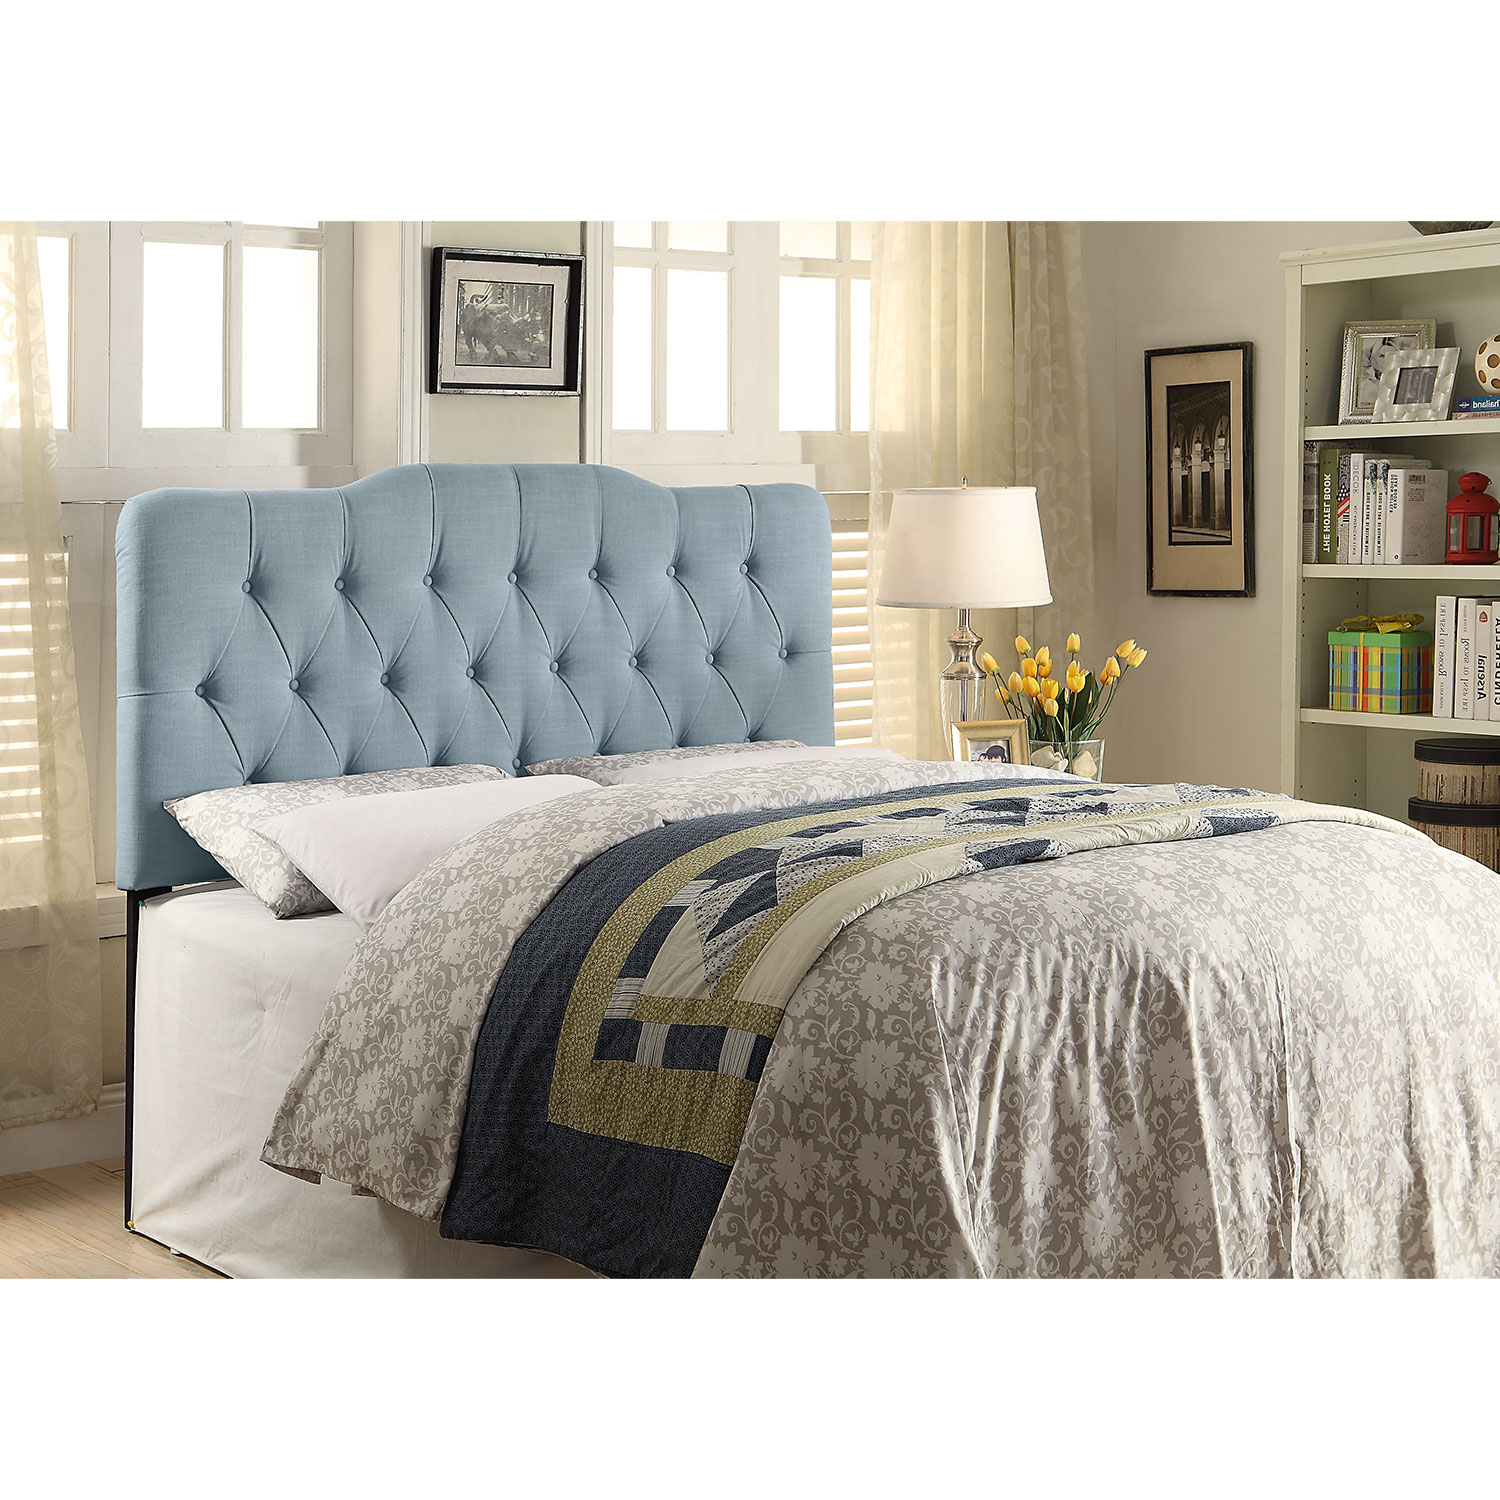 Quinn King Headboard - Blue